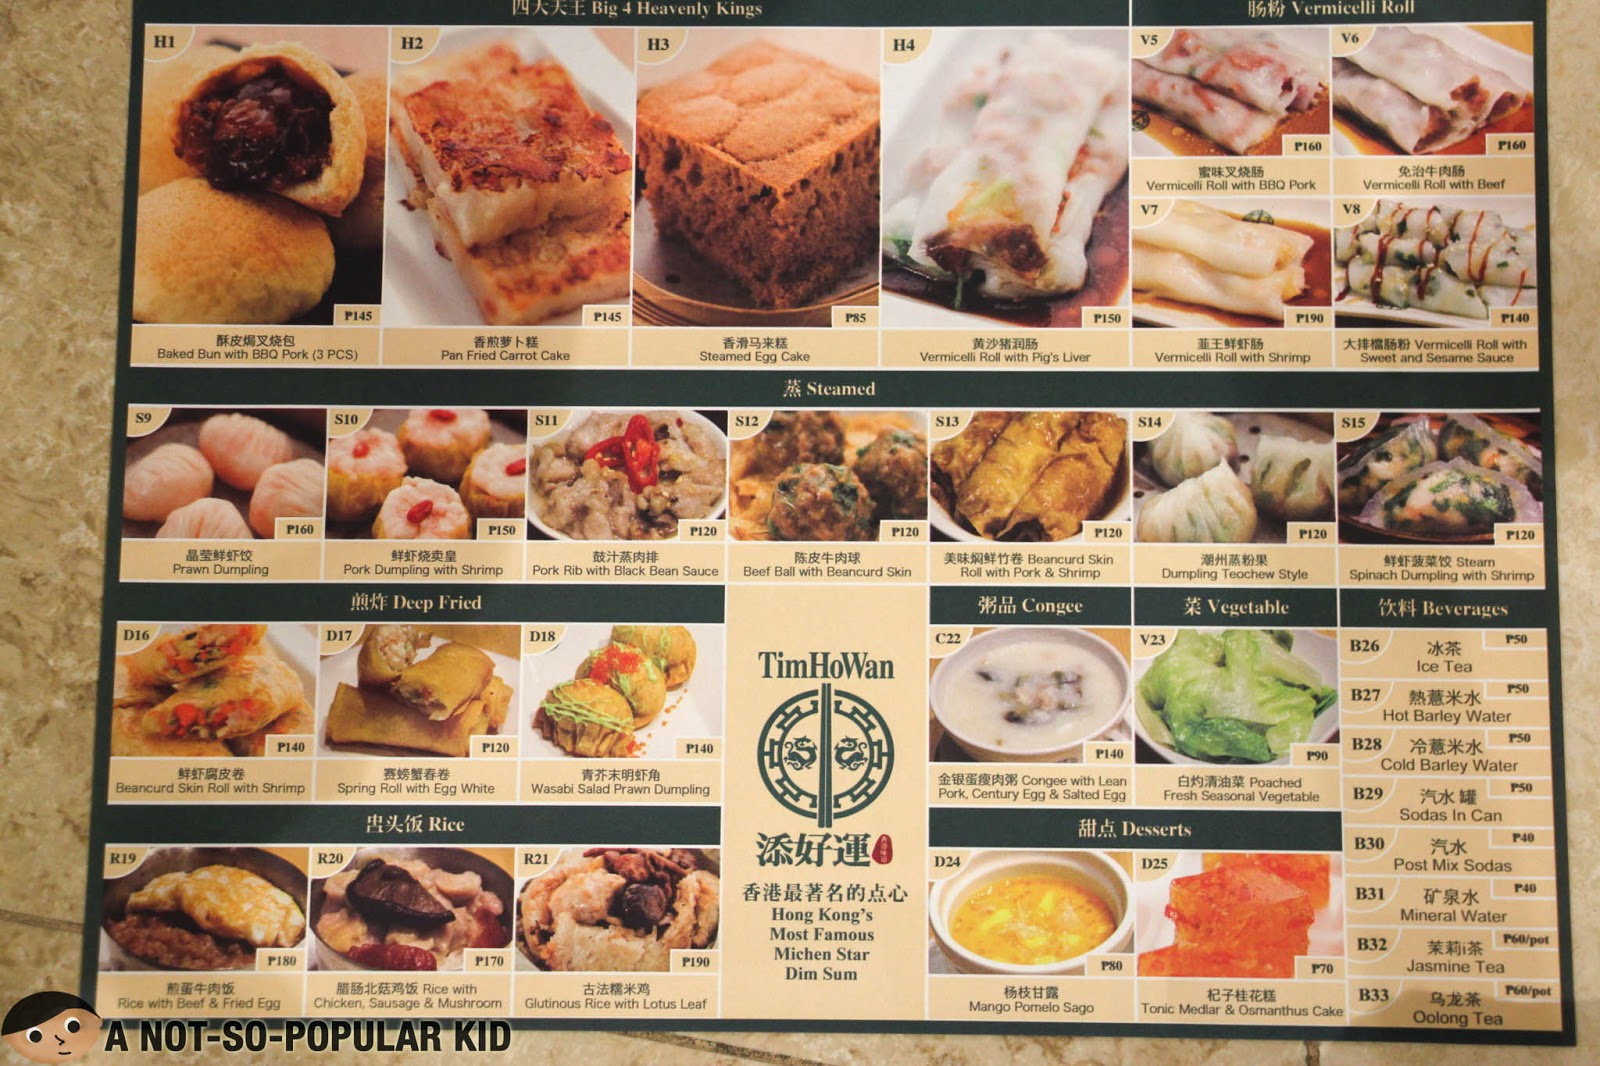 The uncomplicated menu of Tim Ho Wan